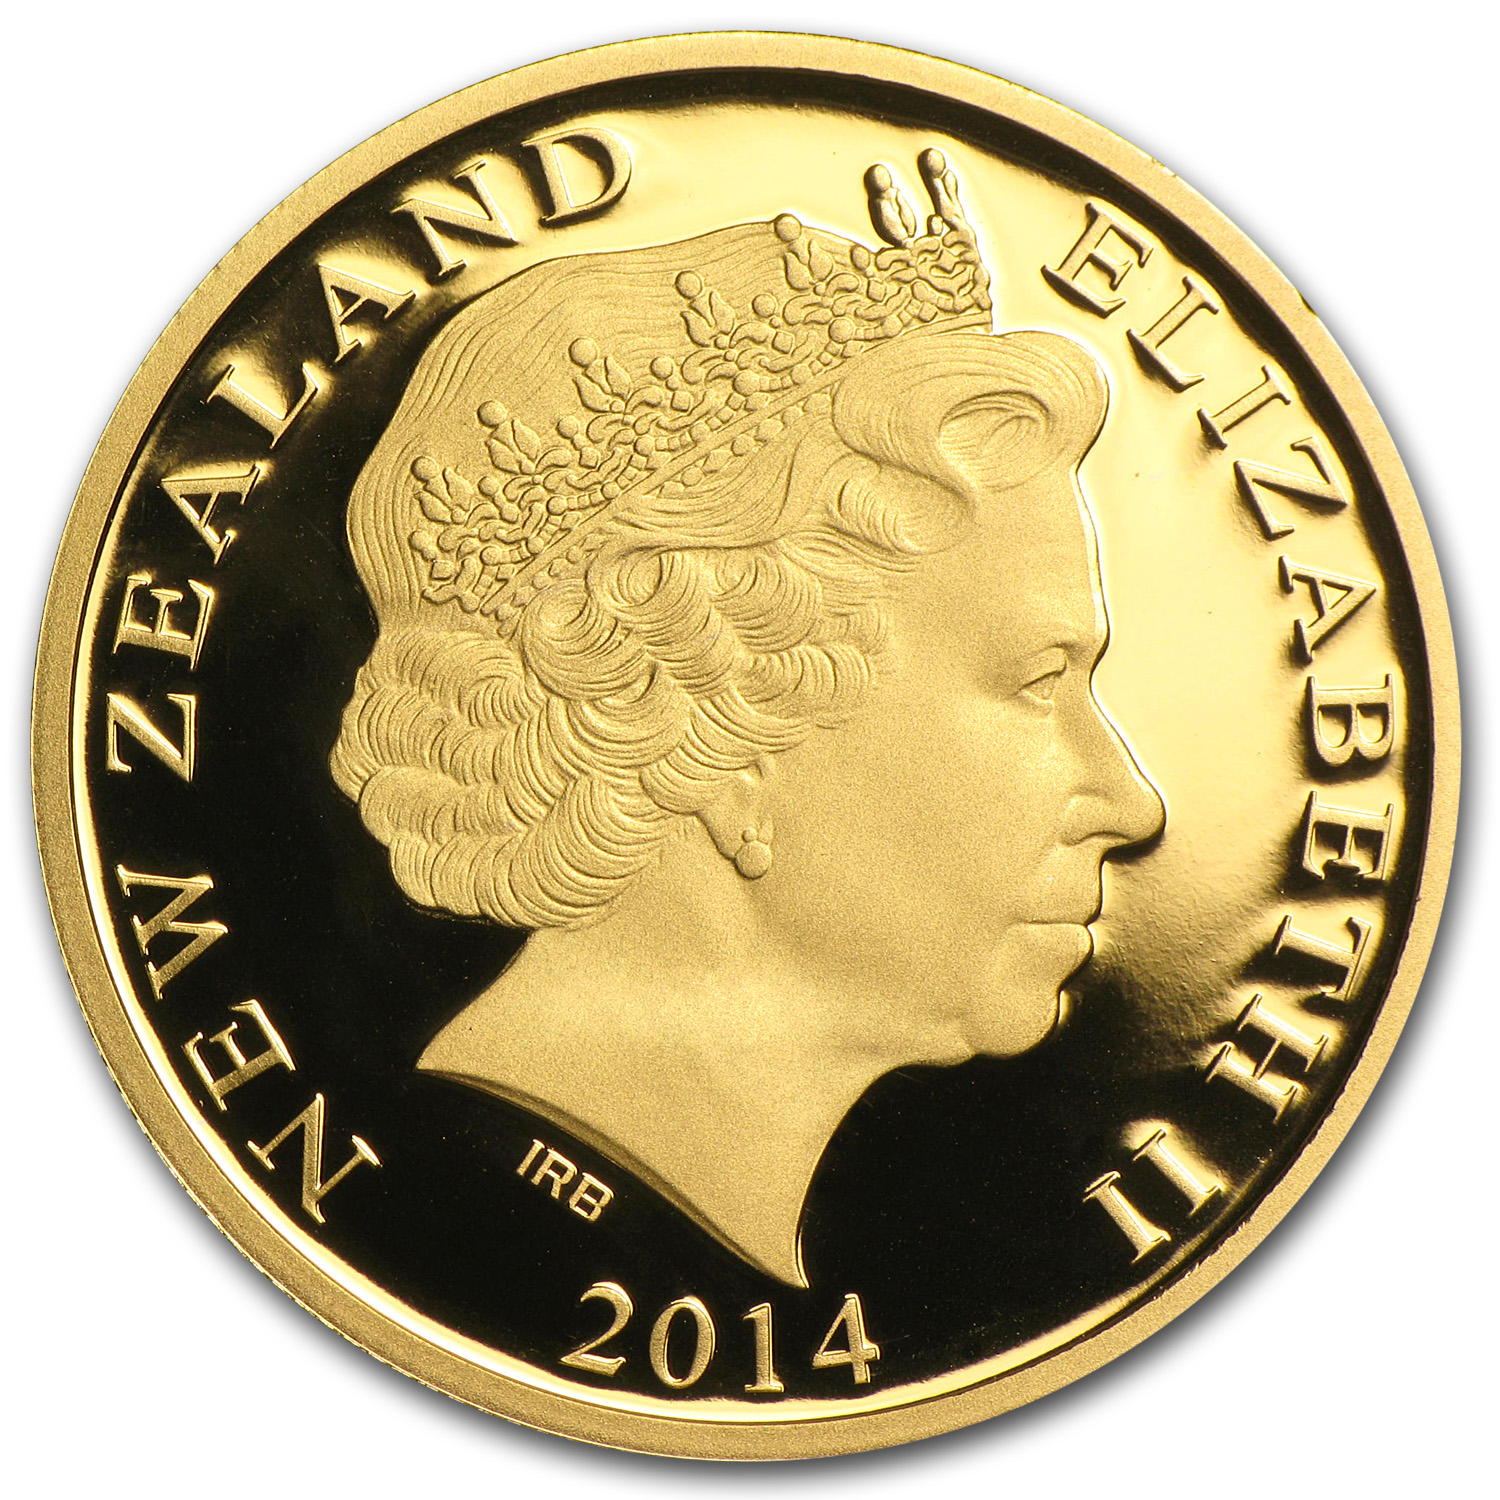 2014 New Zealand 1/4 oz Proof Gold $10 Treasures Kiwi